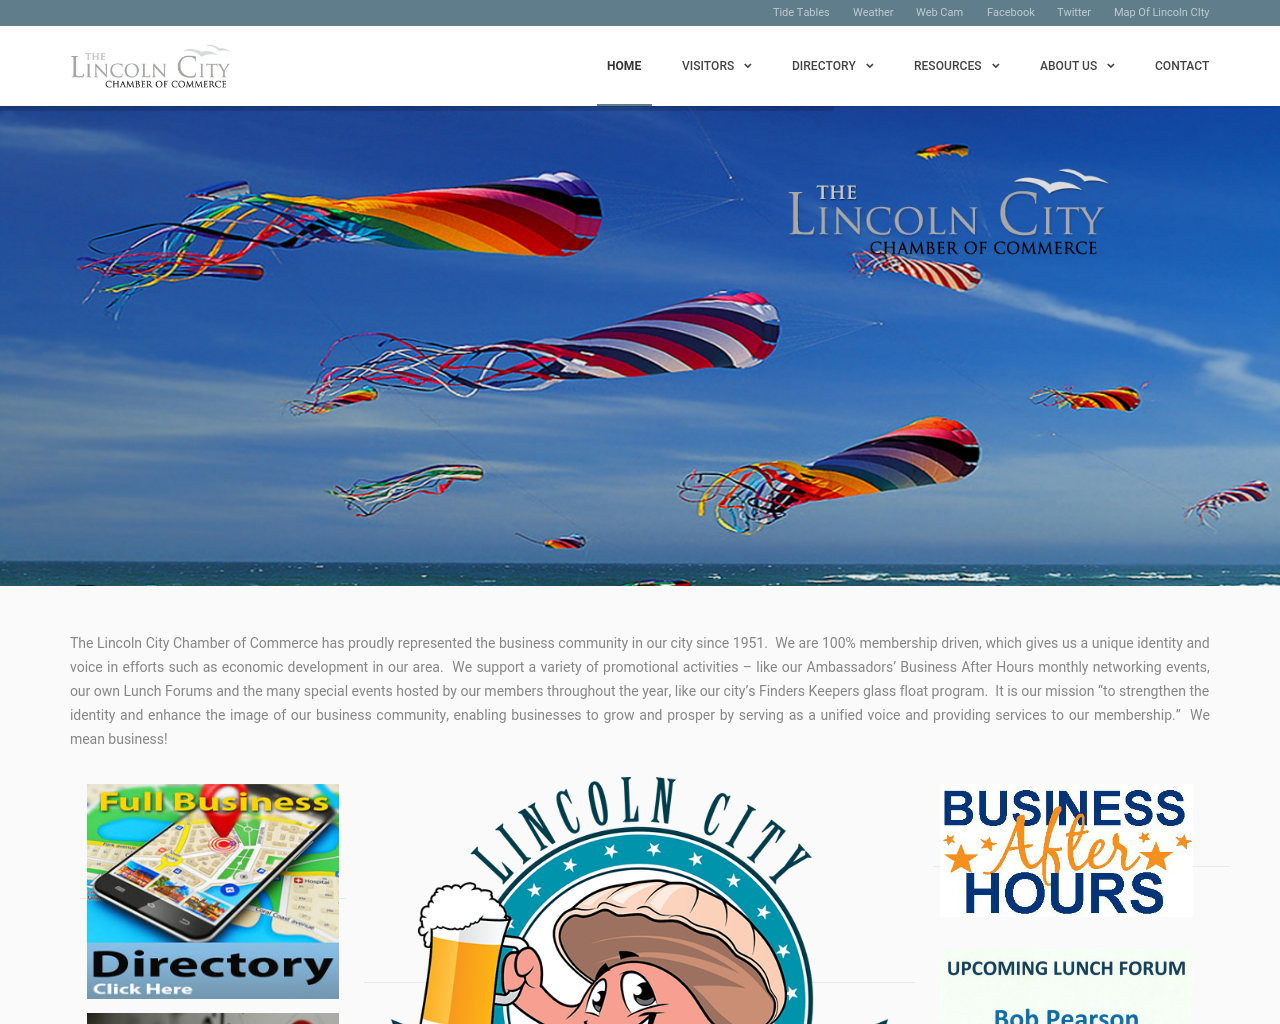 Lincoln-City-Chamber-Of-Commerce-Advertising-Reviews-Pricing